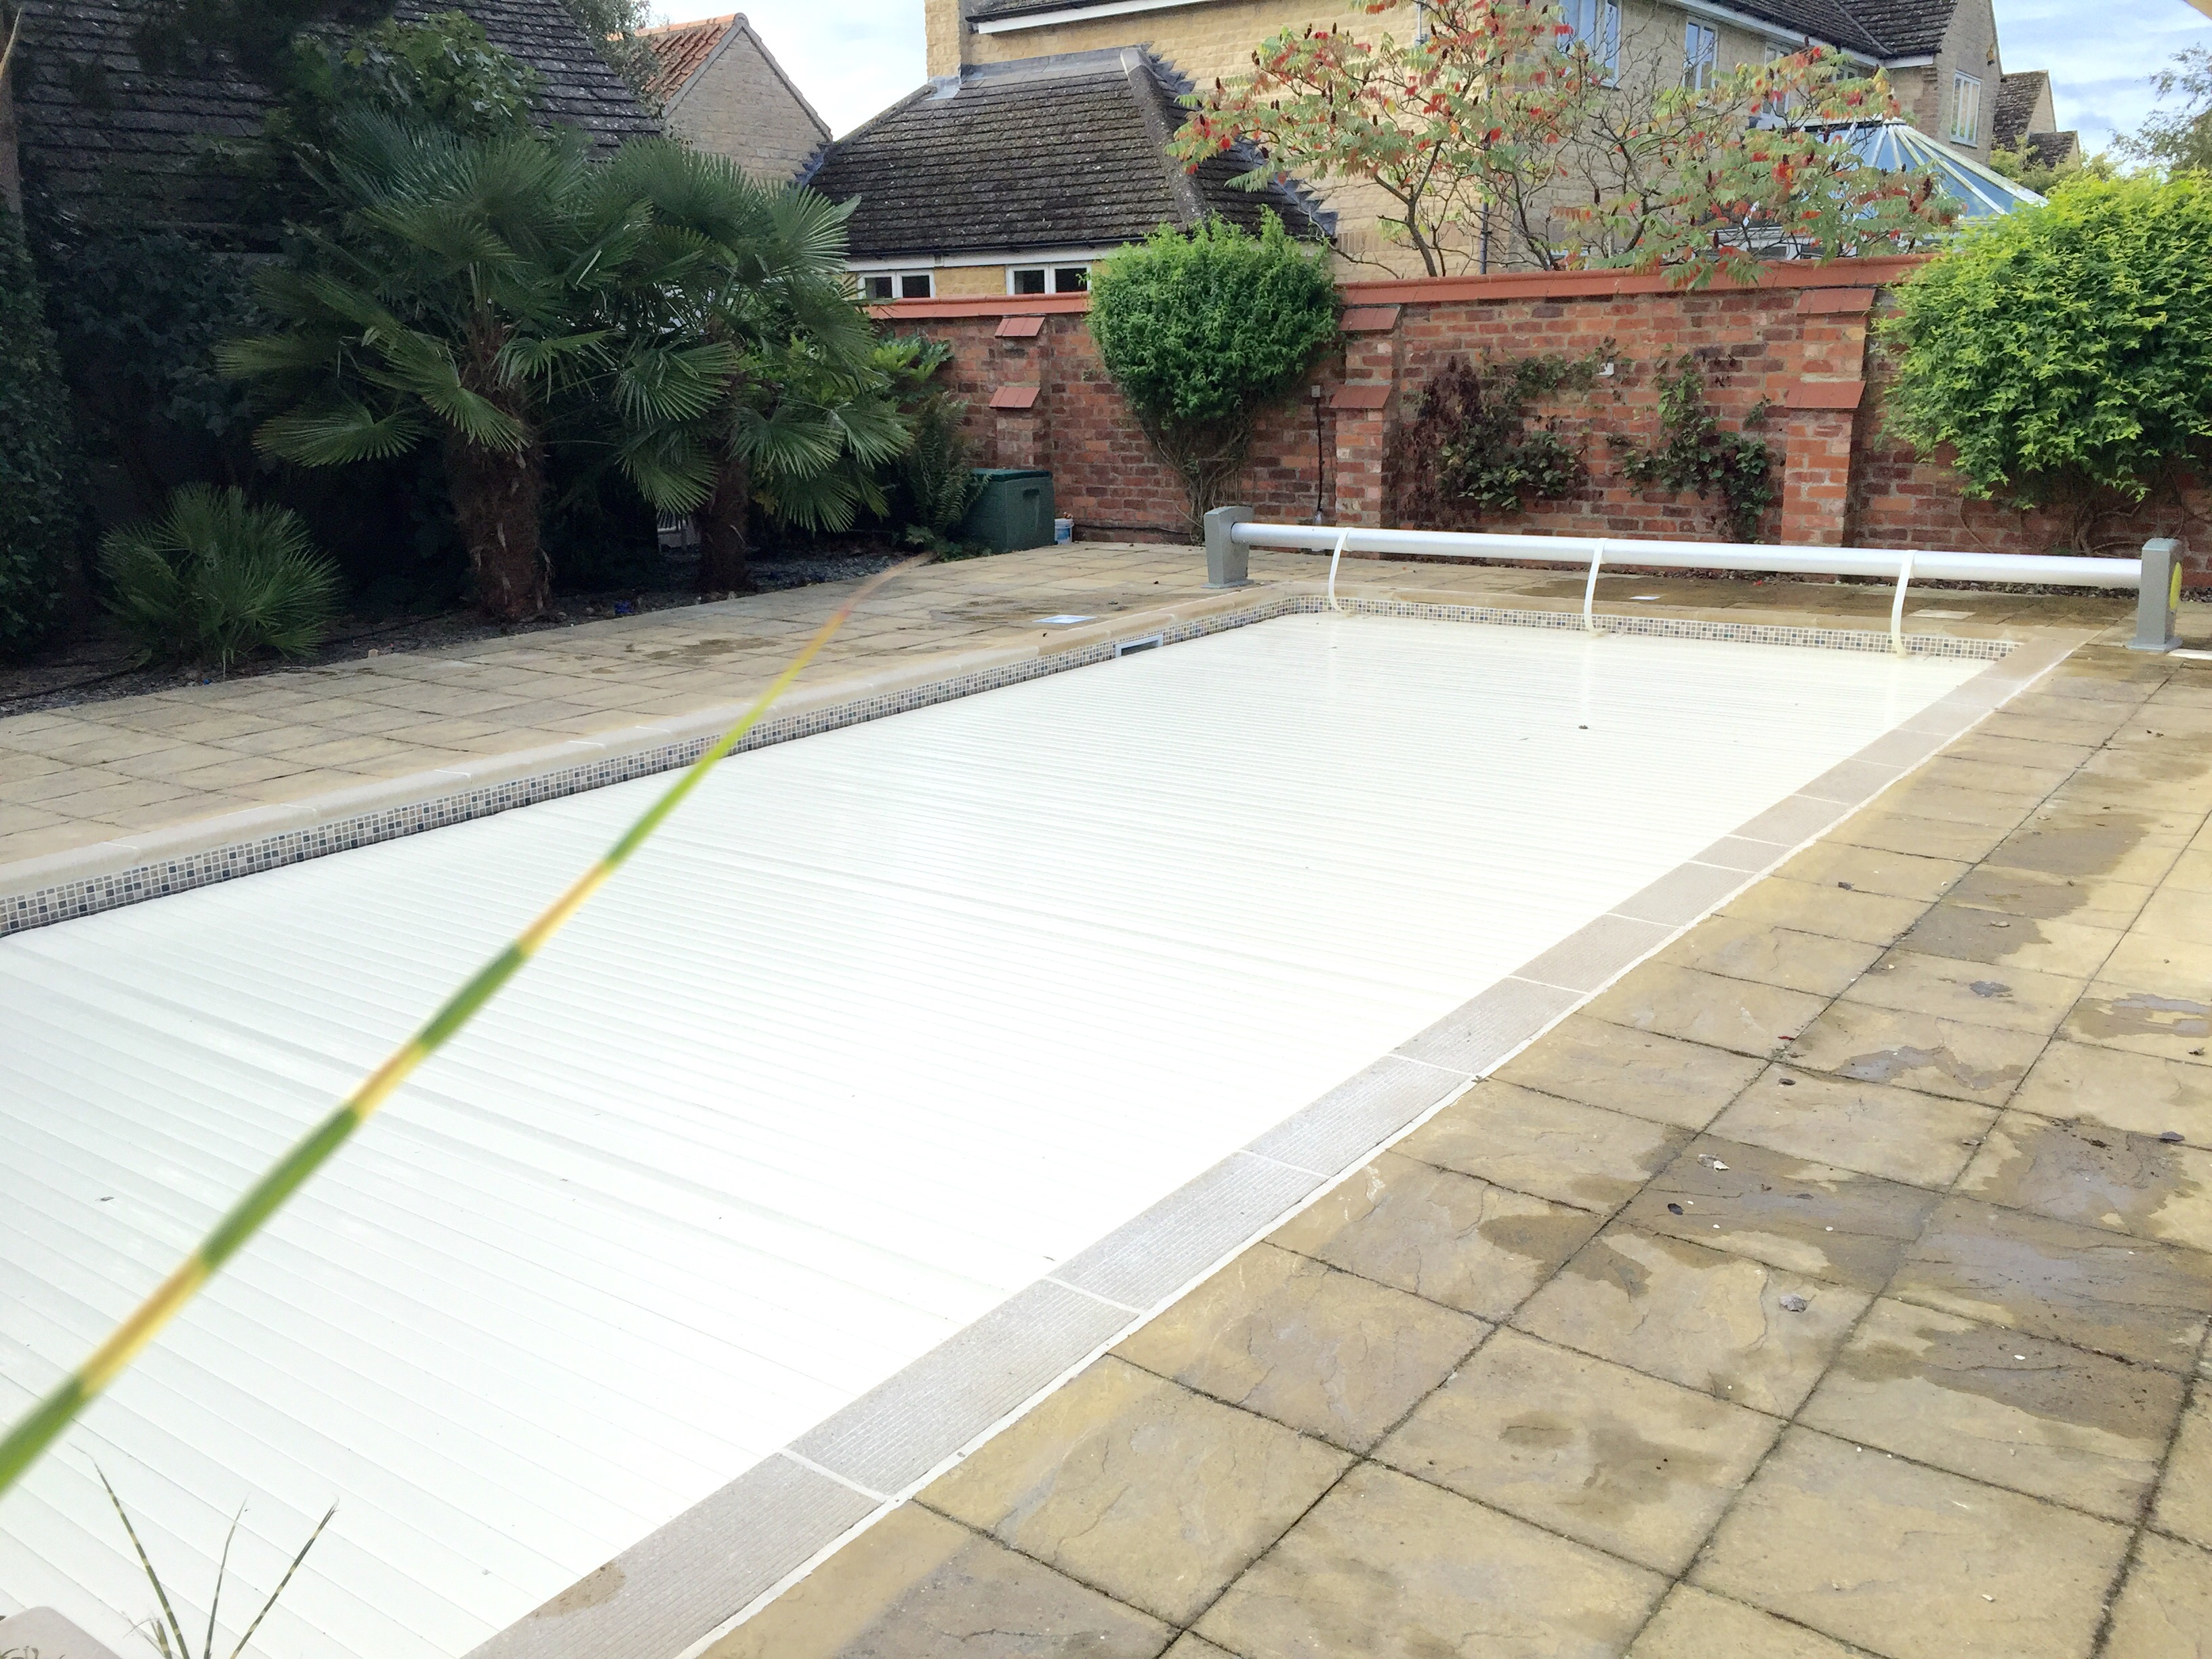 Pool with slatted cover on